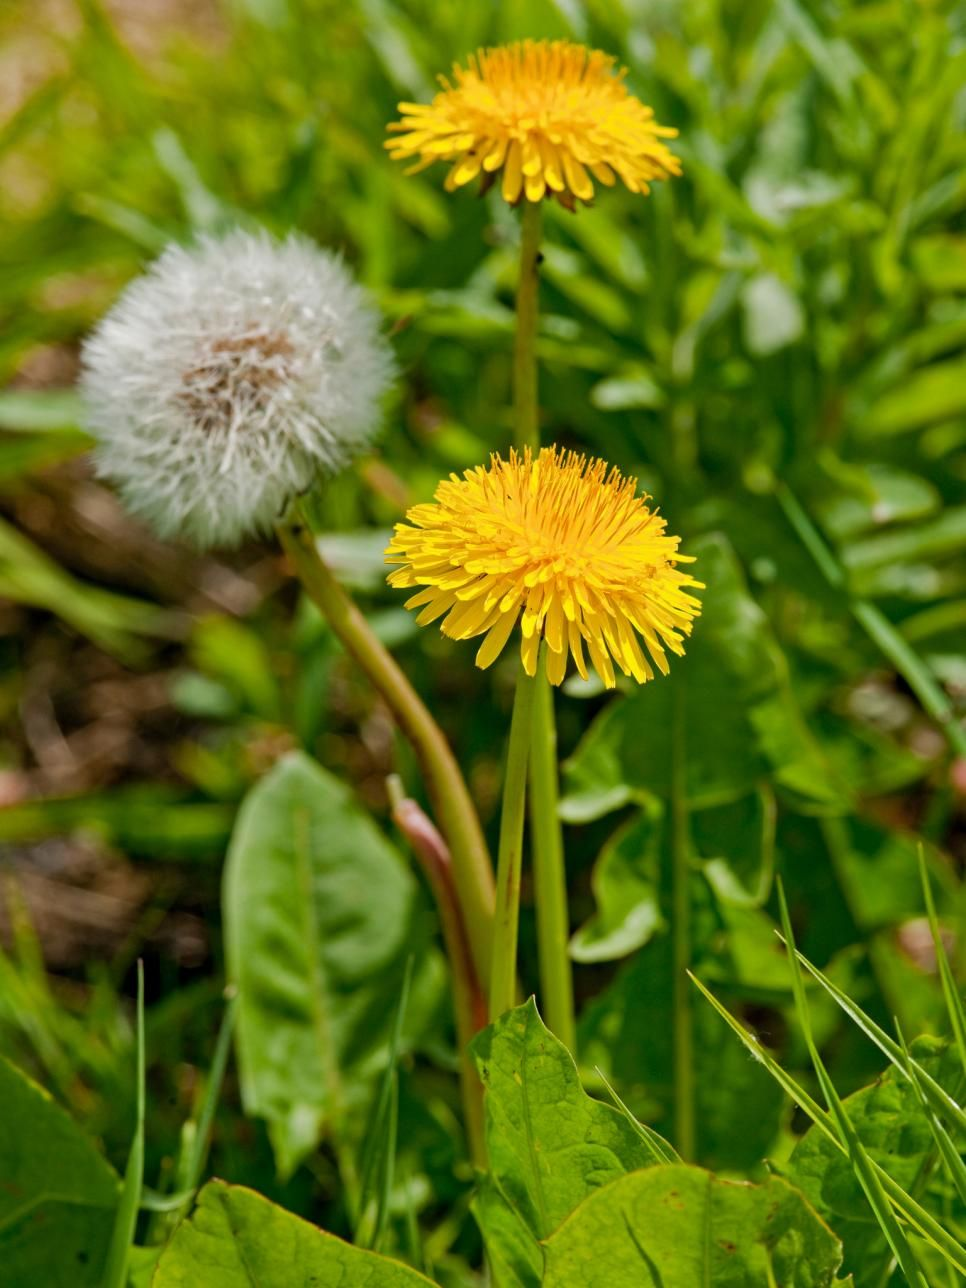 Types of weeds in the lawn lawn weeds taraxacum officinale and